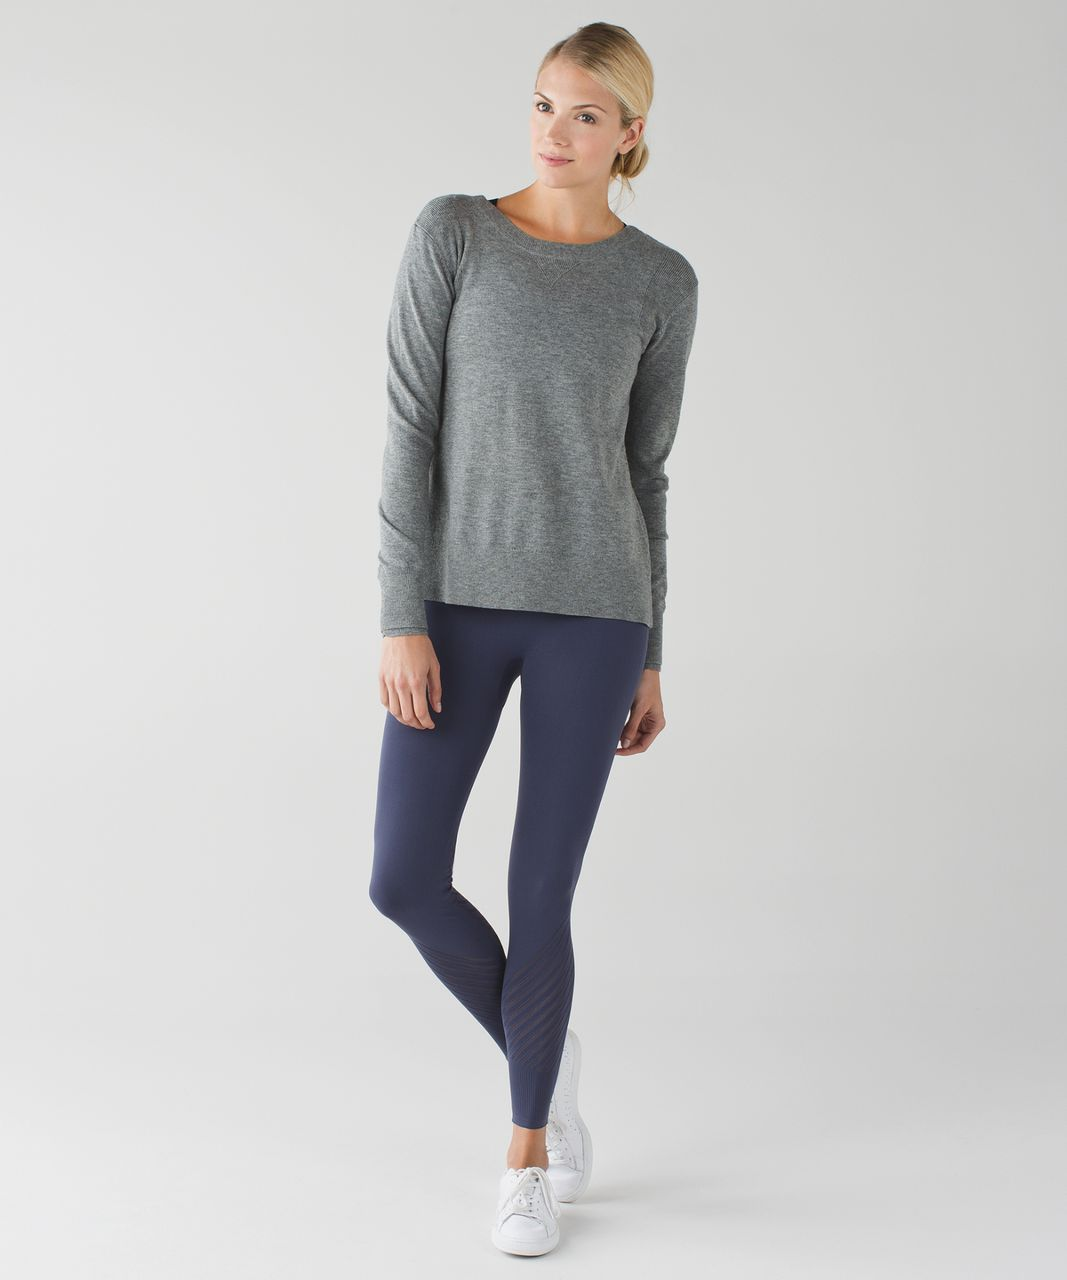 Lululemon Enlighten Tight - Cadet Blue